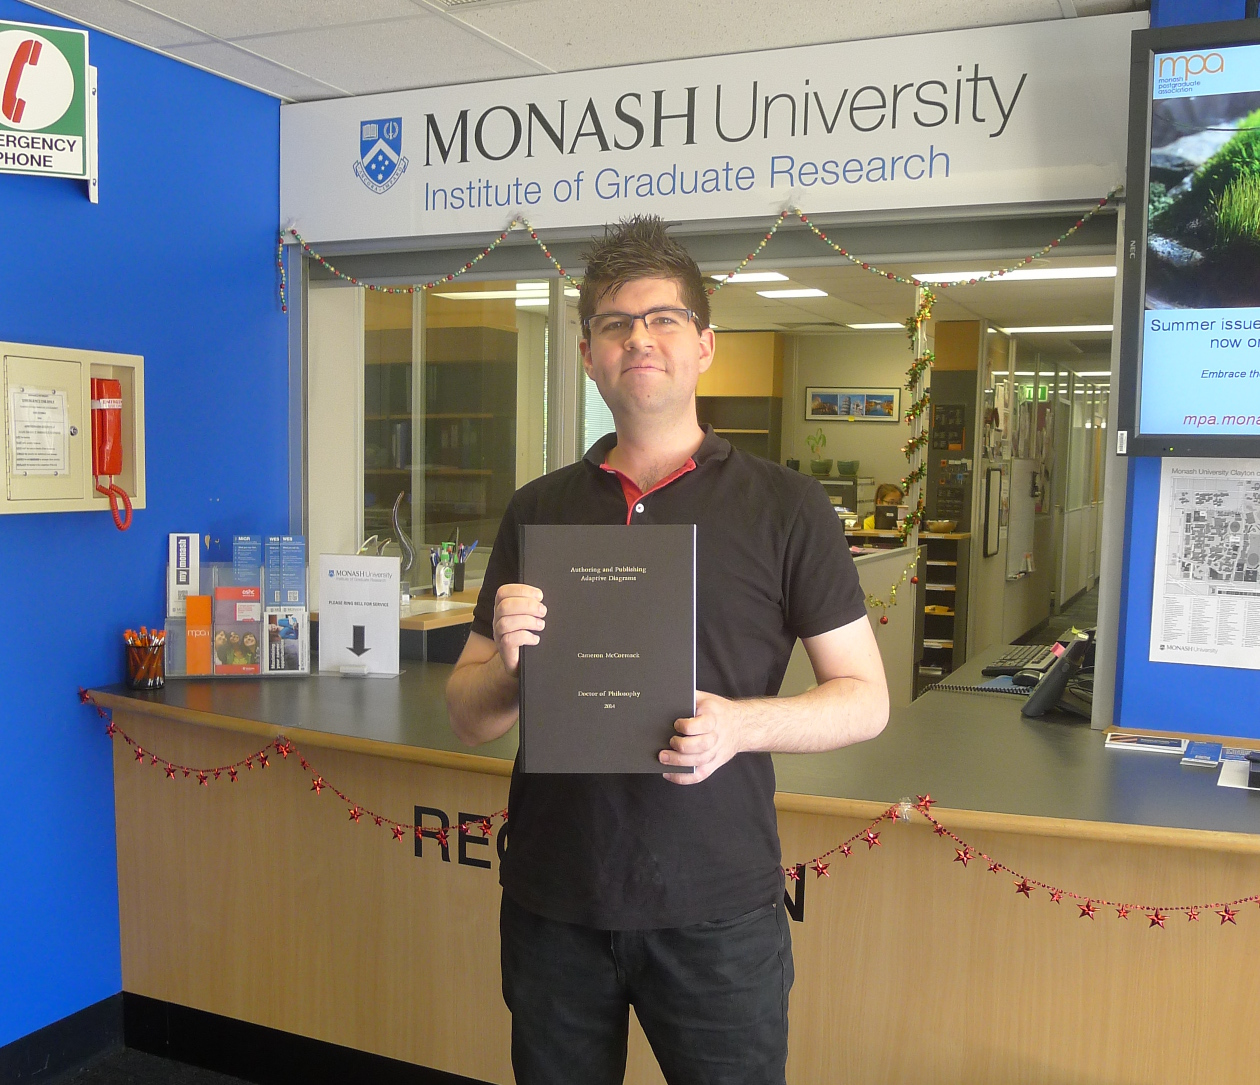 Me submitting my thesis at the Monash Institute of Graduate Research office.